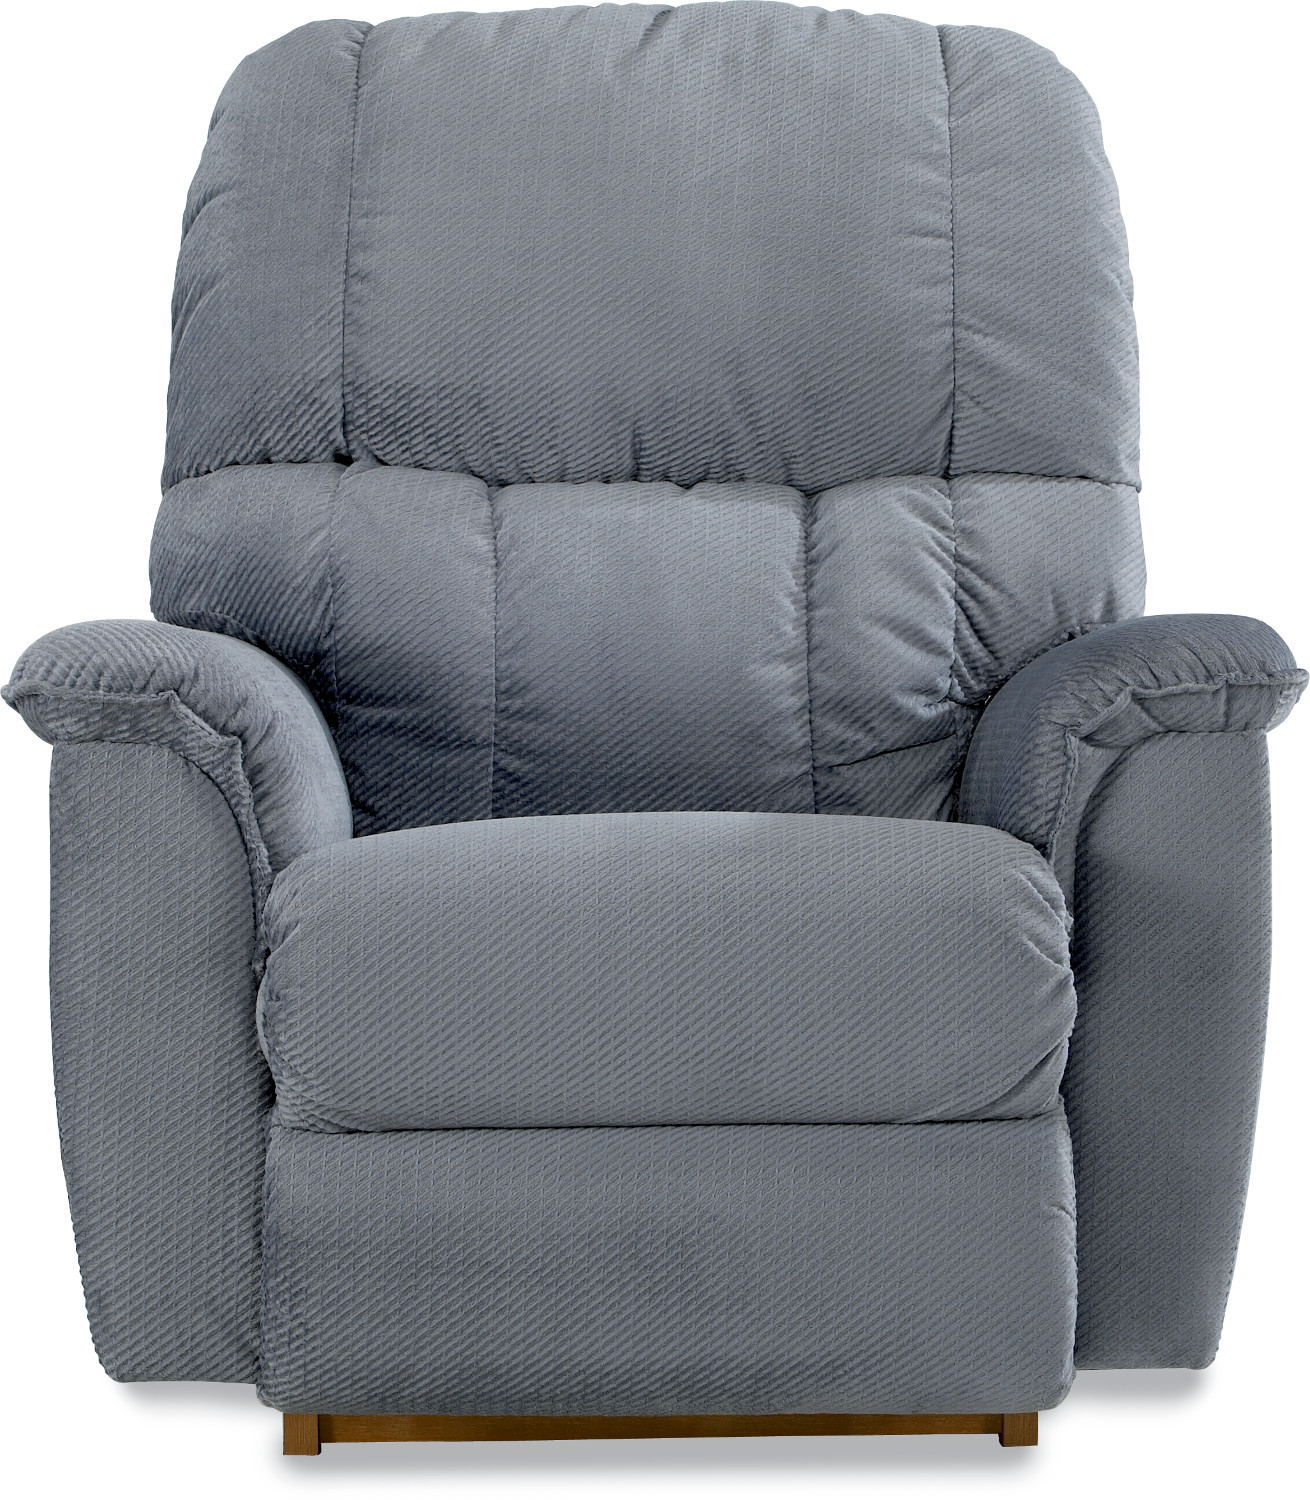 La-Z-Boy IMPERIAL POWER ROCKER RECLINER COASTAL BLUE